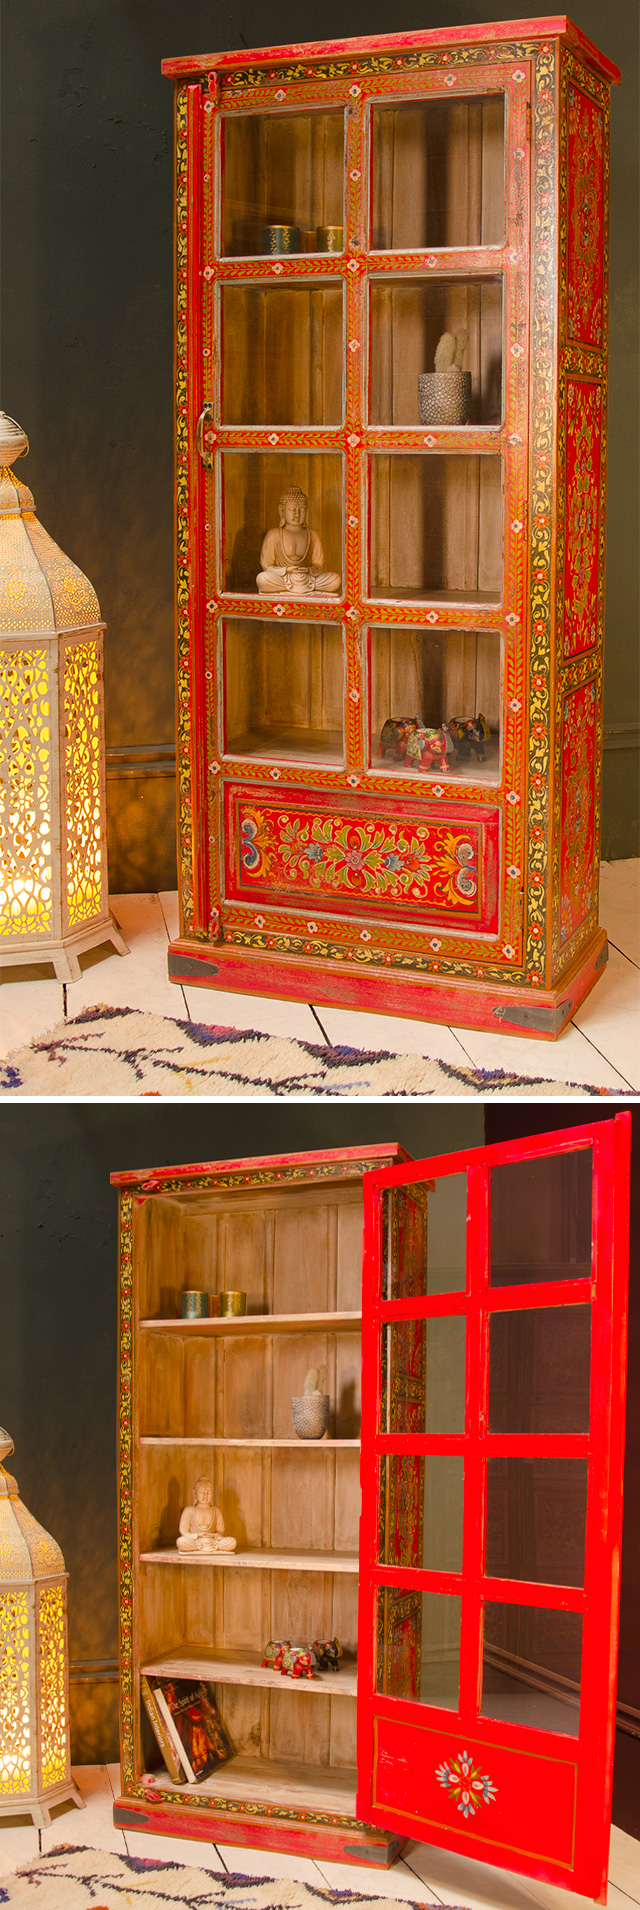 Hand painted vintage effect indian glass cabinet > Vintage ...